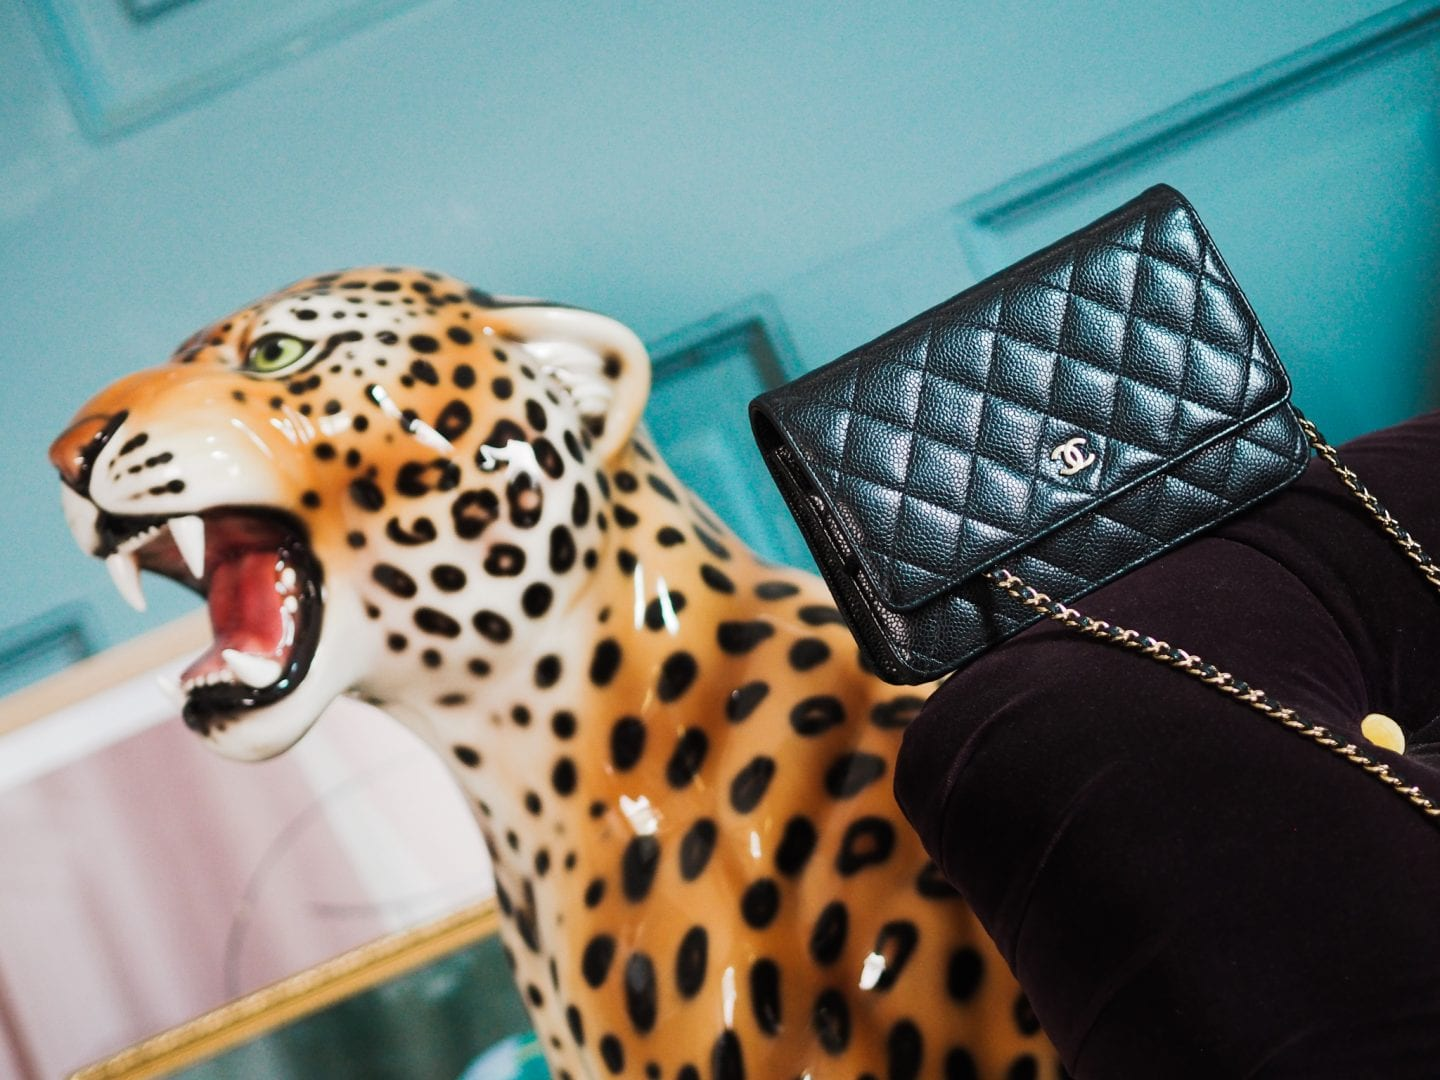 10 Most Popular Chanel Bags of All Time